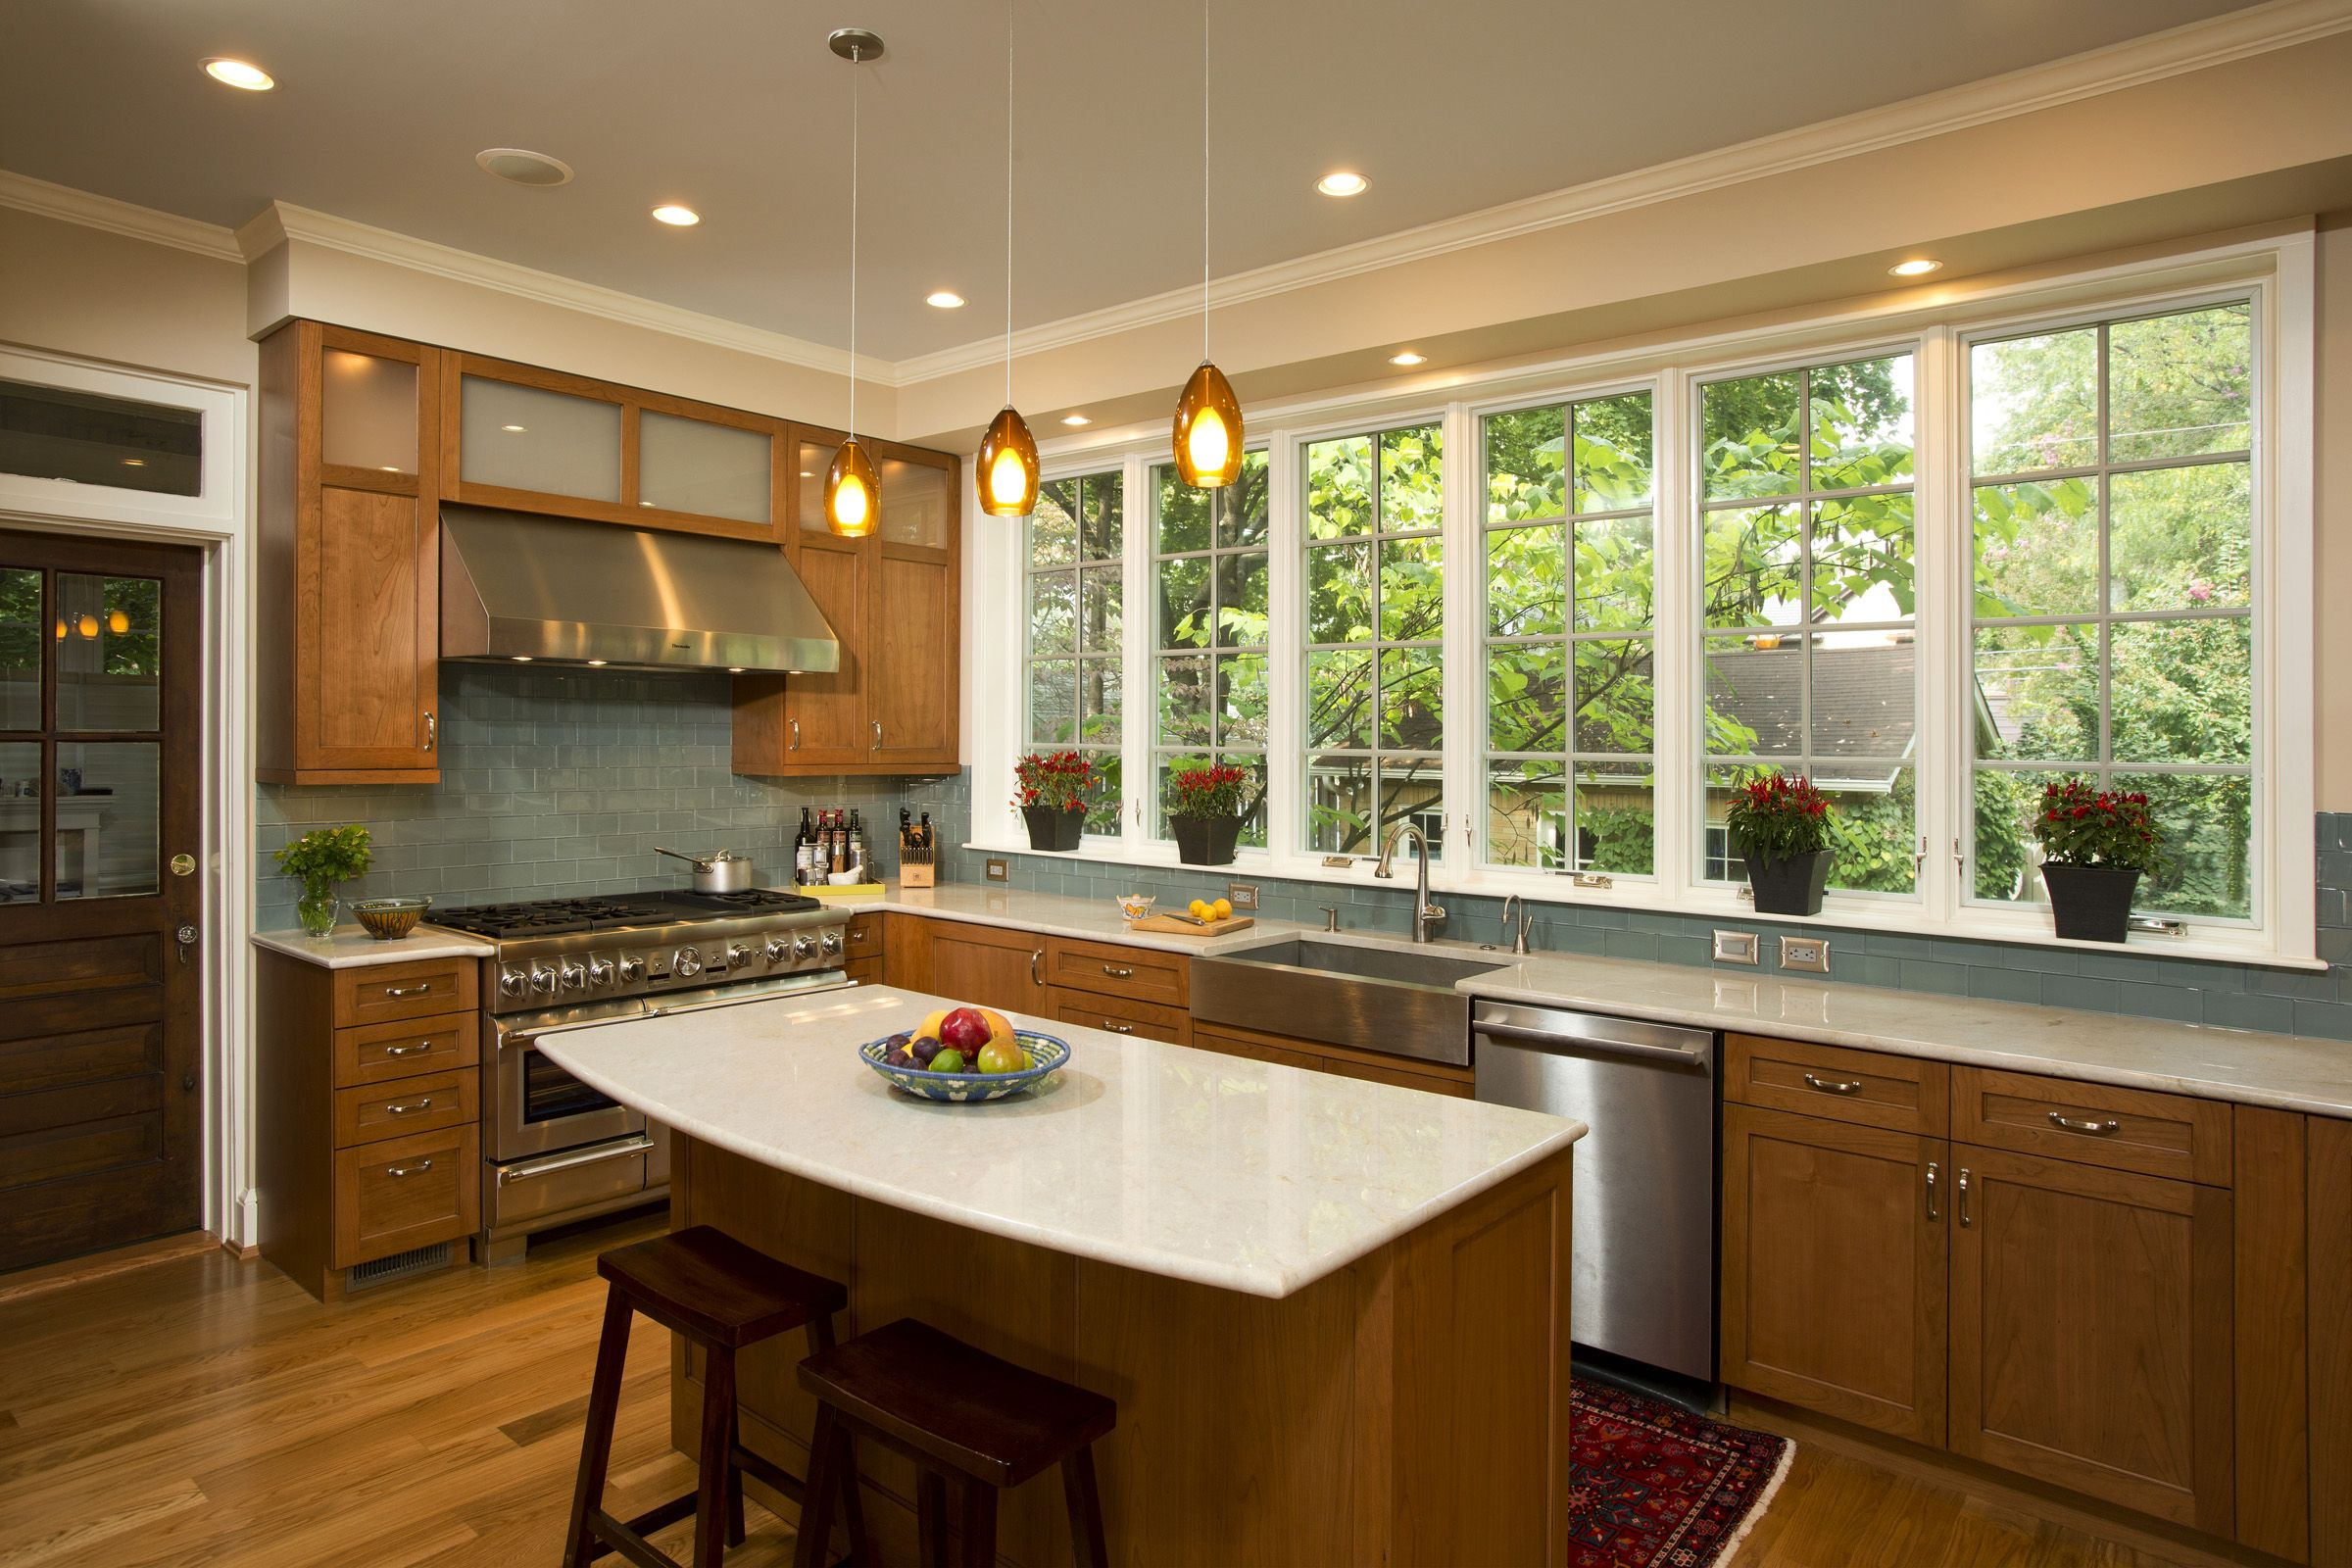 9 foot kitchen ceiling saferbrowser yahoo image search results kitchen soffit kitchen on kitchen cabinets to the ceiling id=25983